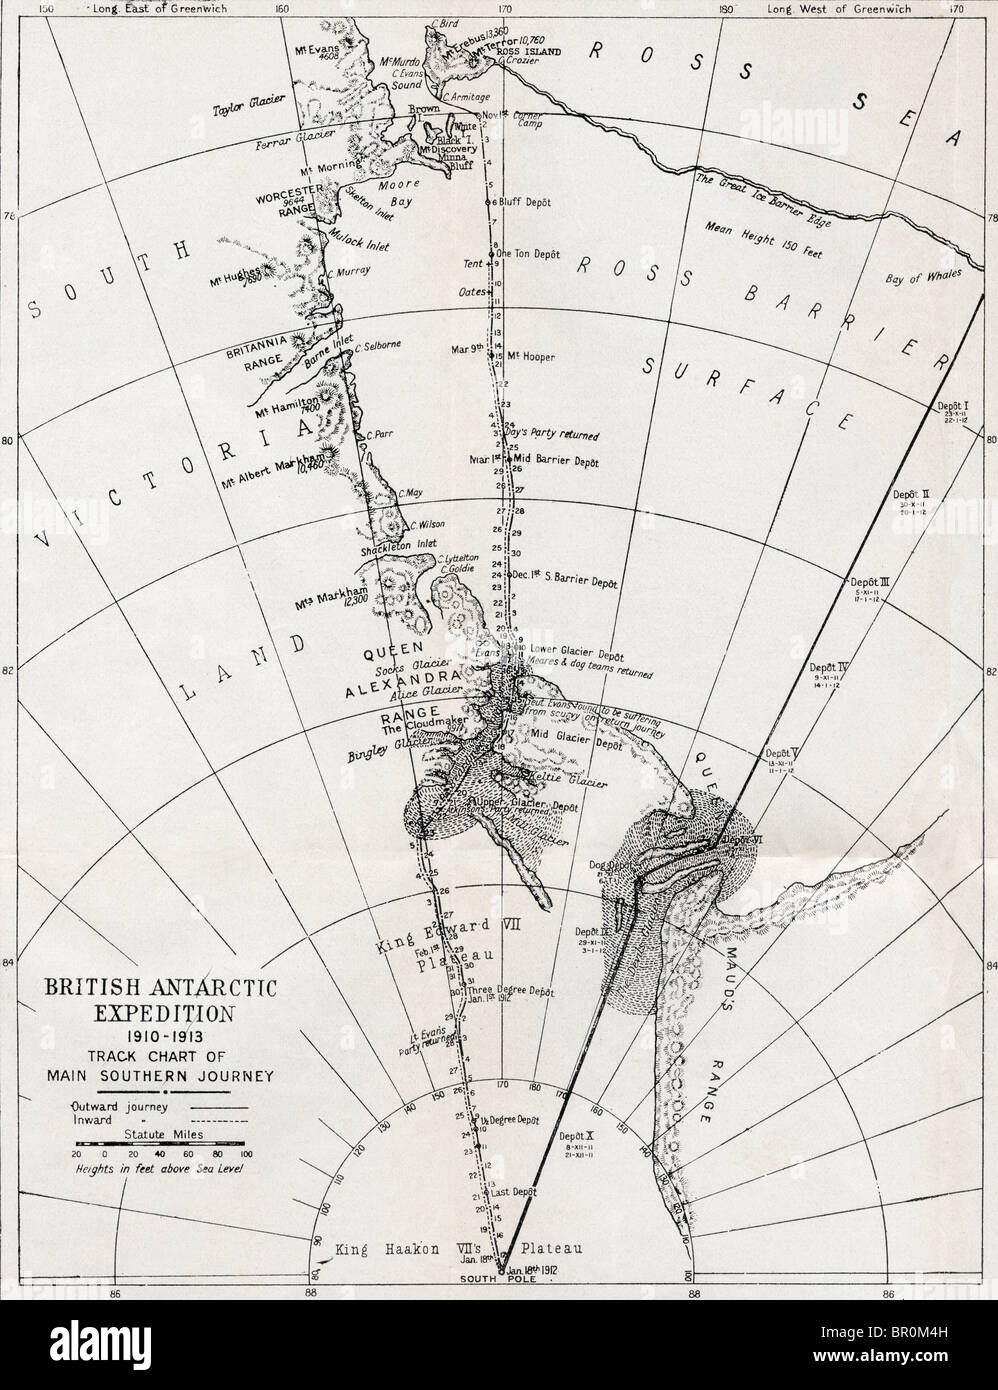 Track chart of the main southern journey of Robert Falcon Scott´s British Antarctic Expedition, 1910 - 1913. - Stock Image